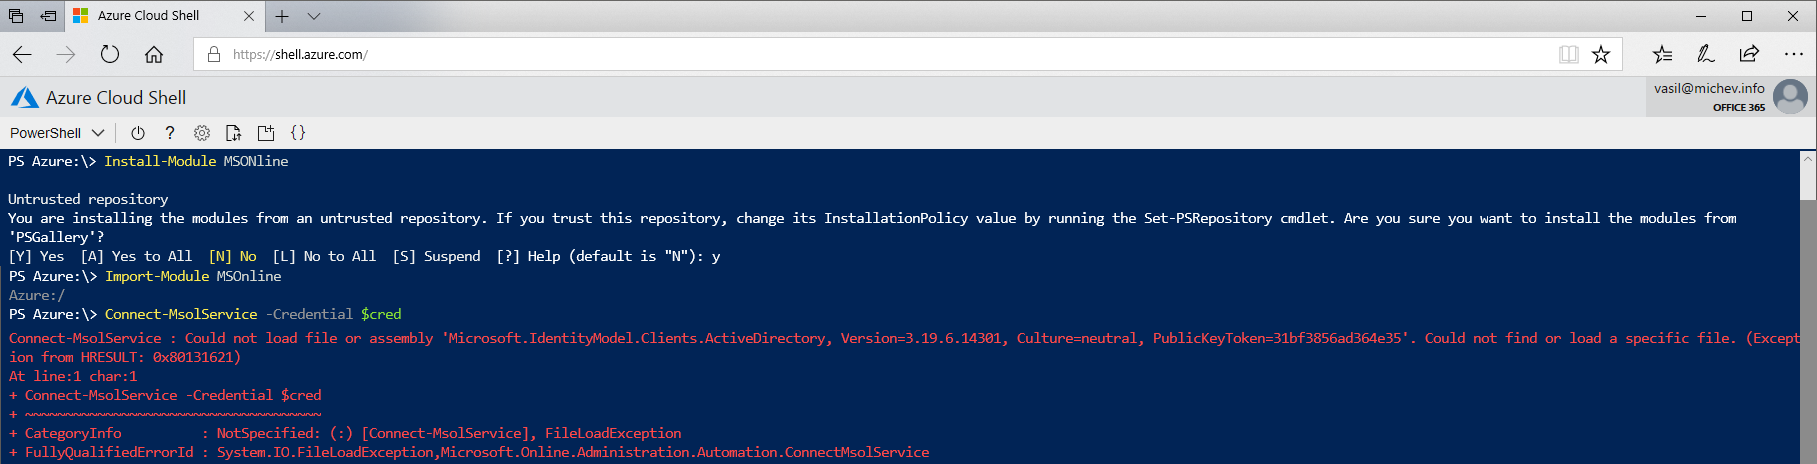 PowerShell Web Access - Just how practical is it?